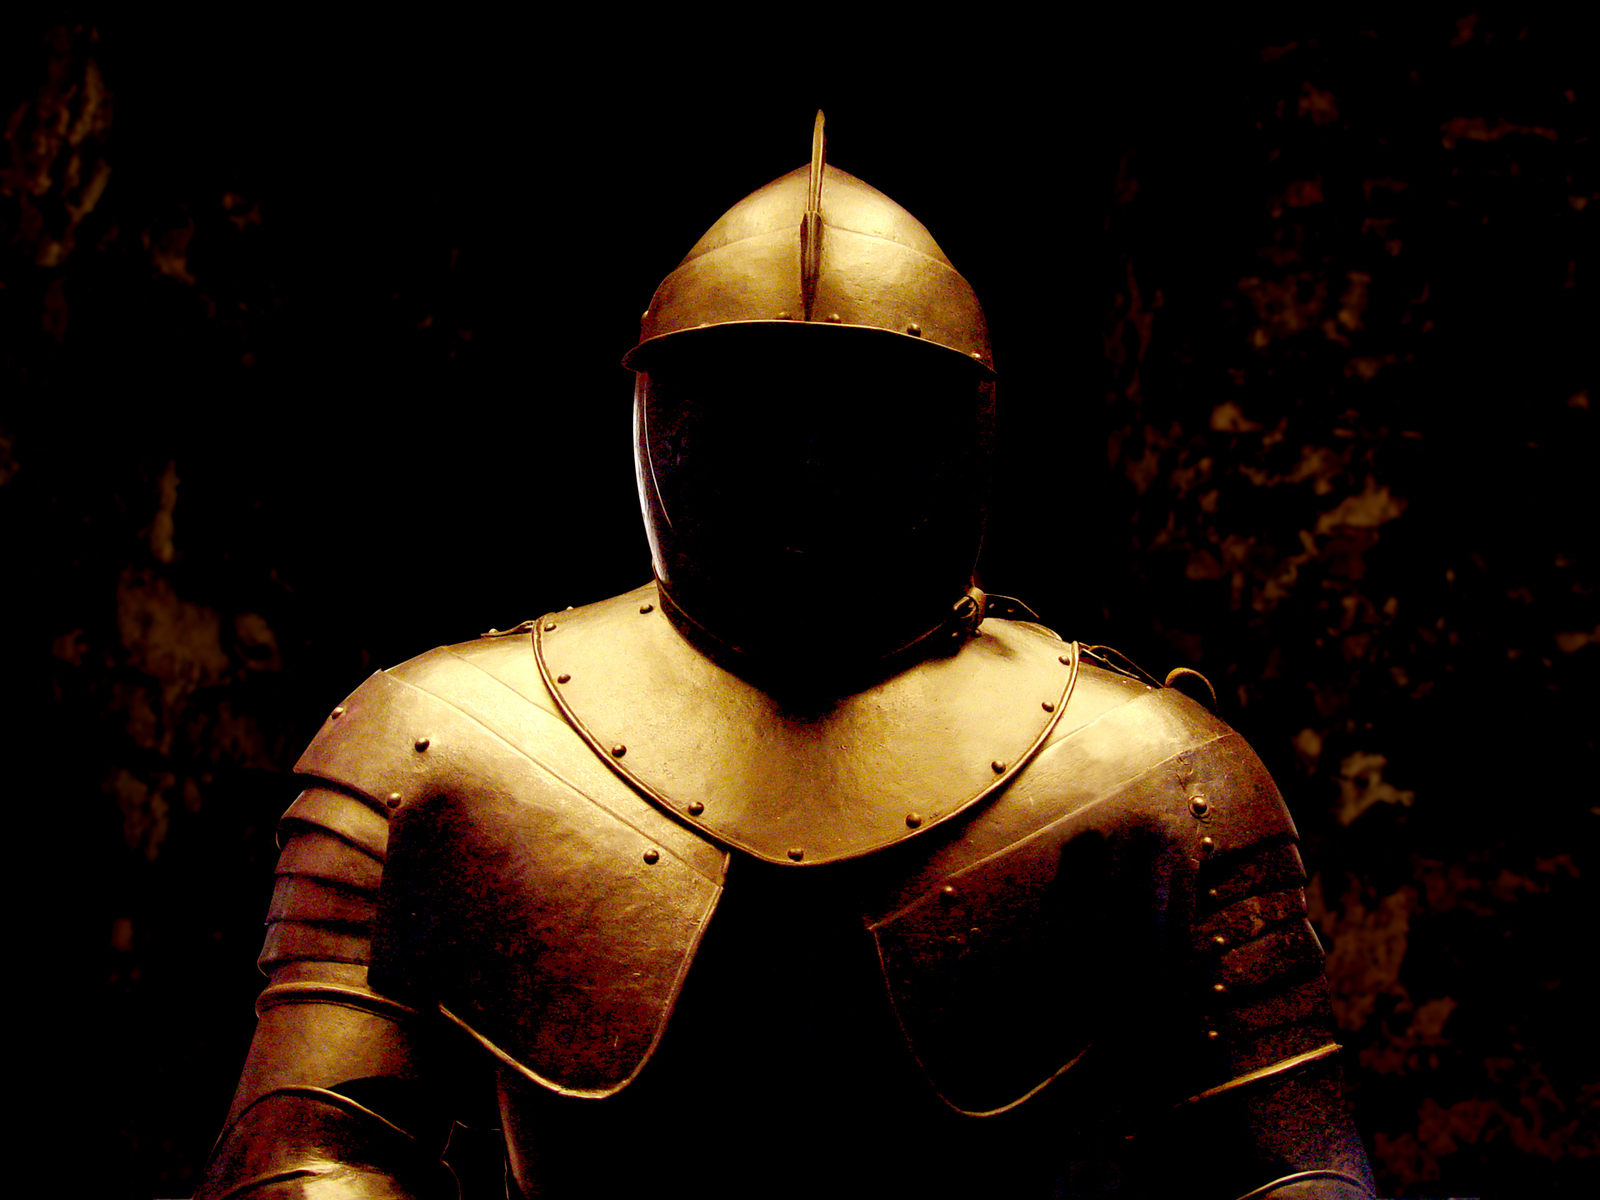 the armor of god - Putting on the weapons of warfare